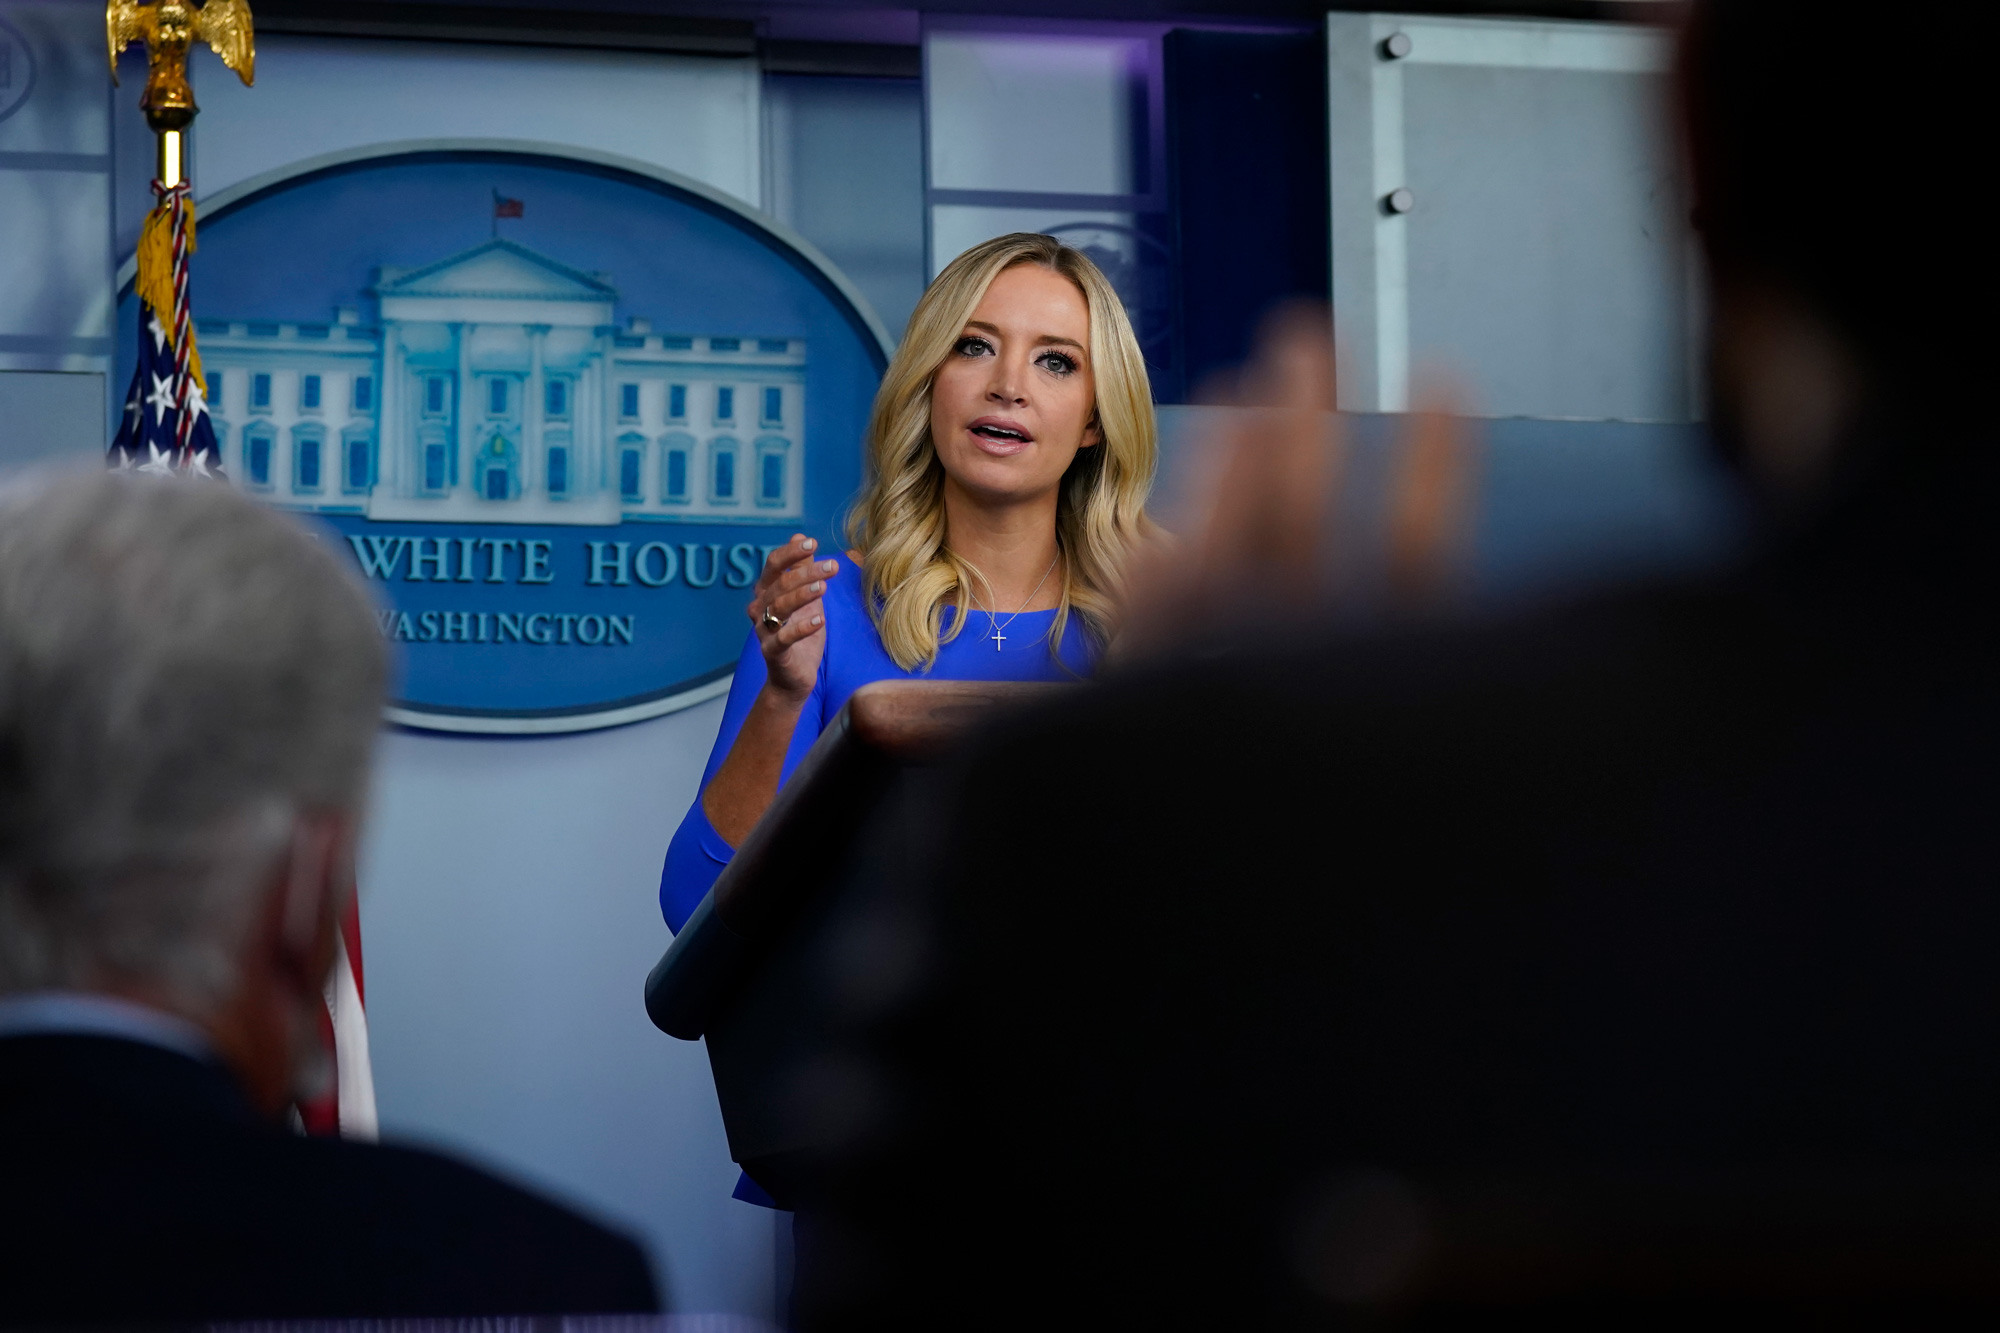 White House press secretary Kayleigh McEnany speaks during a news conference at the White House in Washington, DC, on October 1.